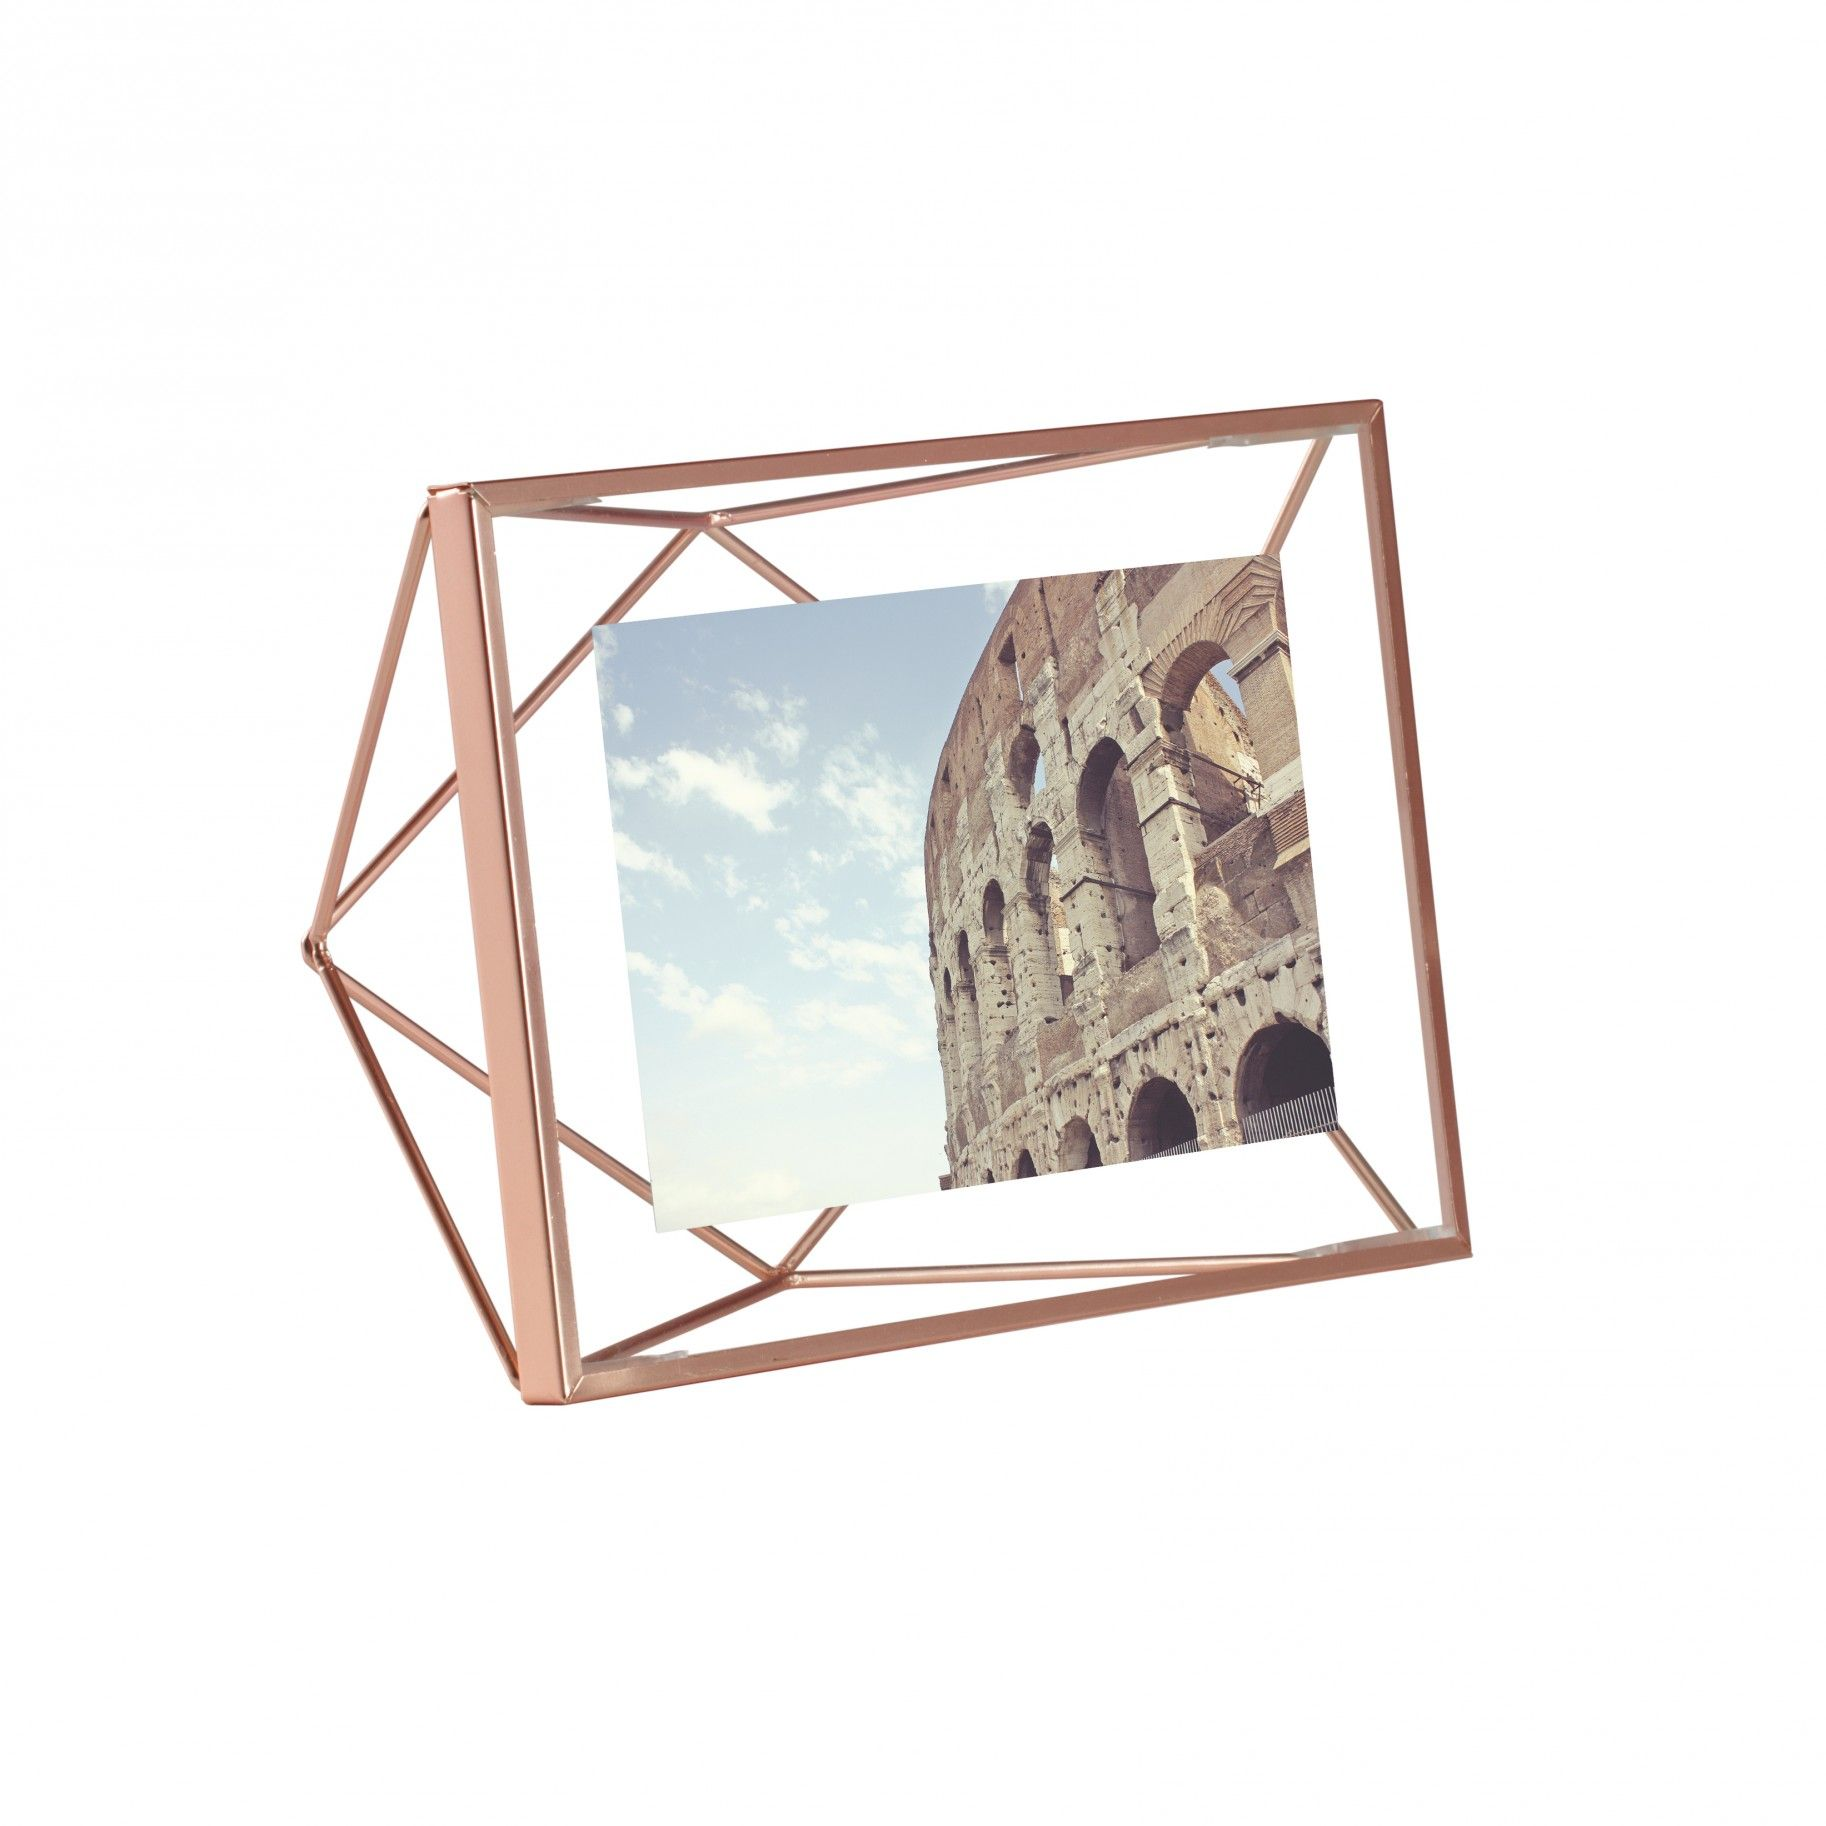 Prisma frame 4 x 6 copper | Wall mount, Room and Bedrooms